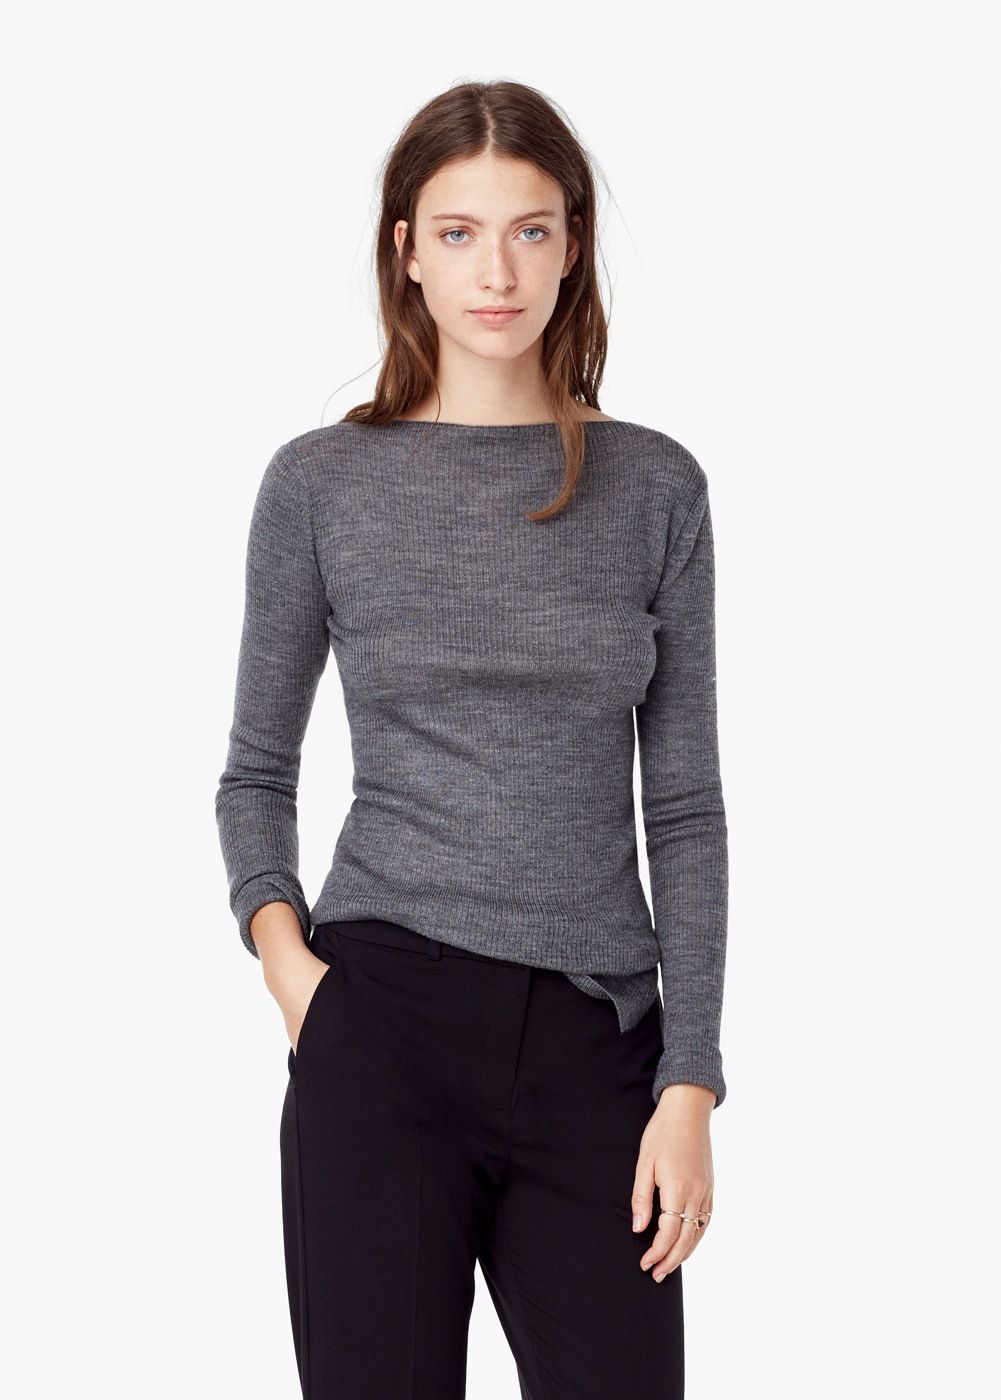 Ribbed Sweater Woman Blend Wool Blend Sweater Woman Ribbed Ribbed Wool tWzqfw8RT